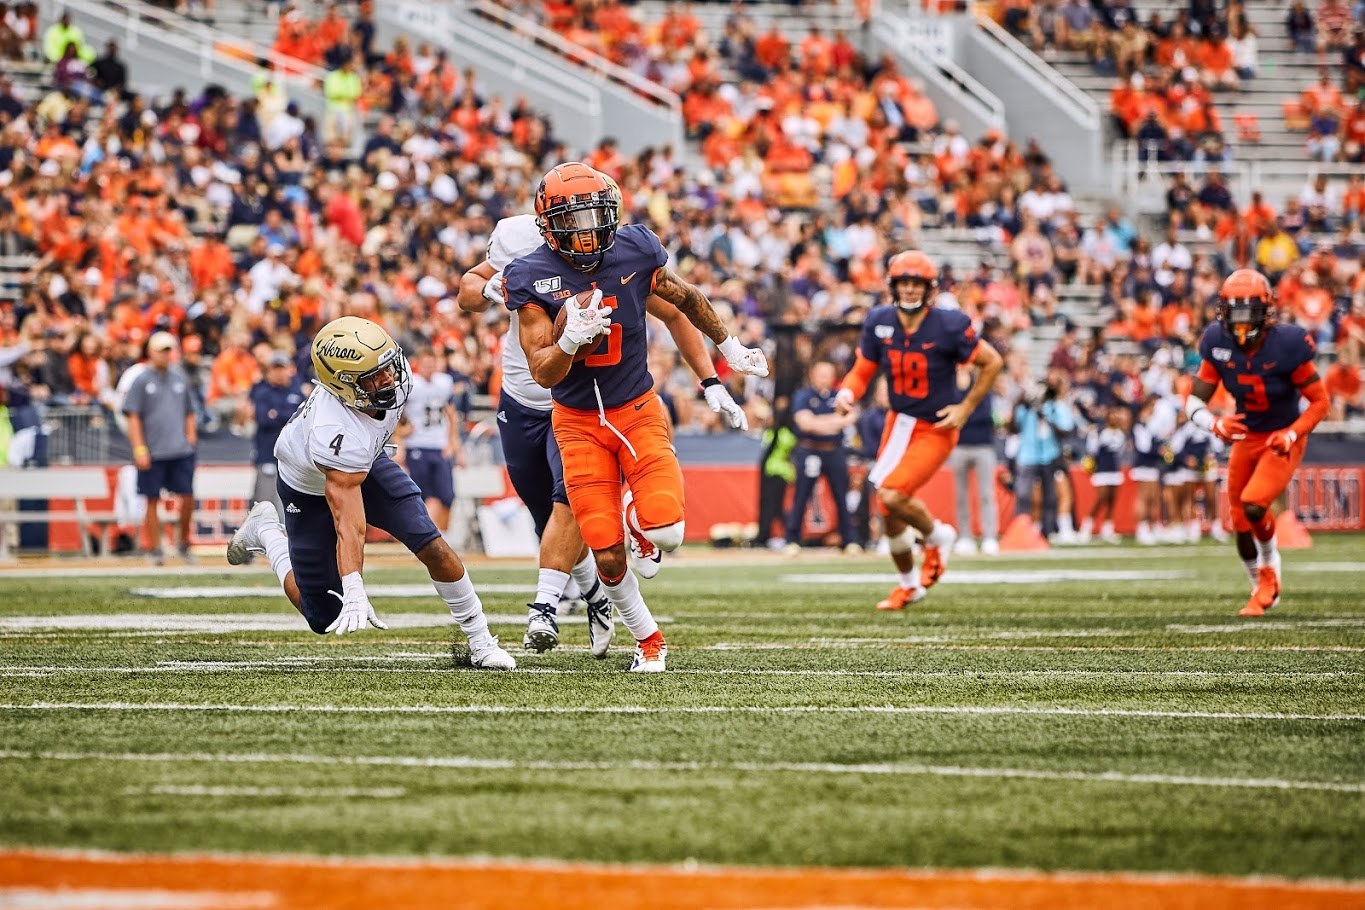 Illinois lineman Oluwole Betiku Jr. tackles Akron quarterback Kato Nelson on August 31. The Illini won 42-3. Betiku currenly leads the NCAA leaderboard in sacks at 5.0 and hopes this will help the team win its first bowl game under Lovie Smith.